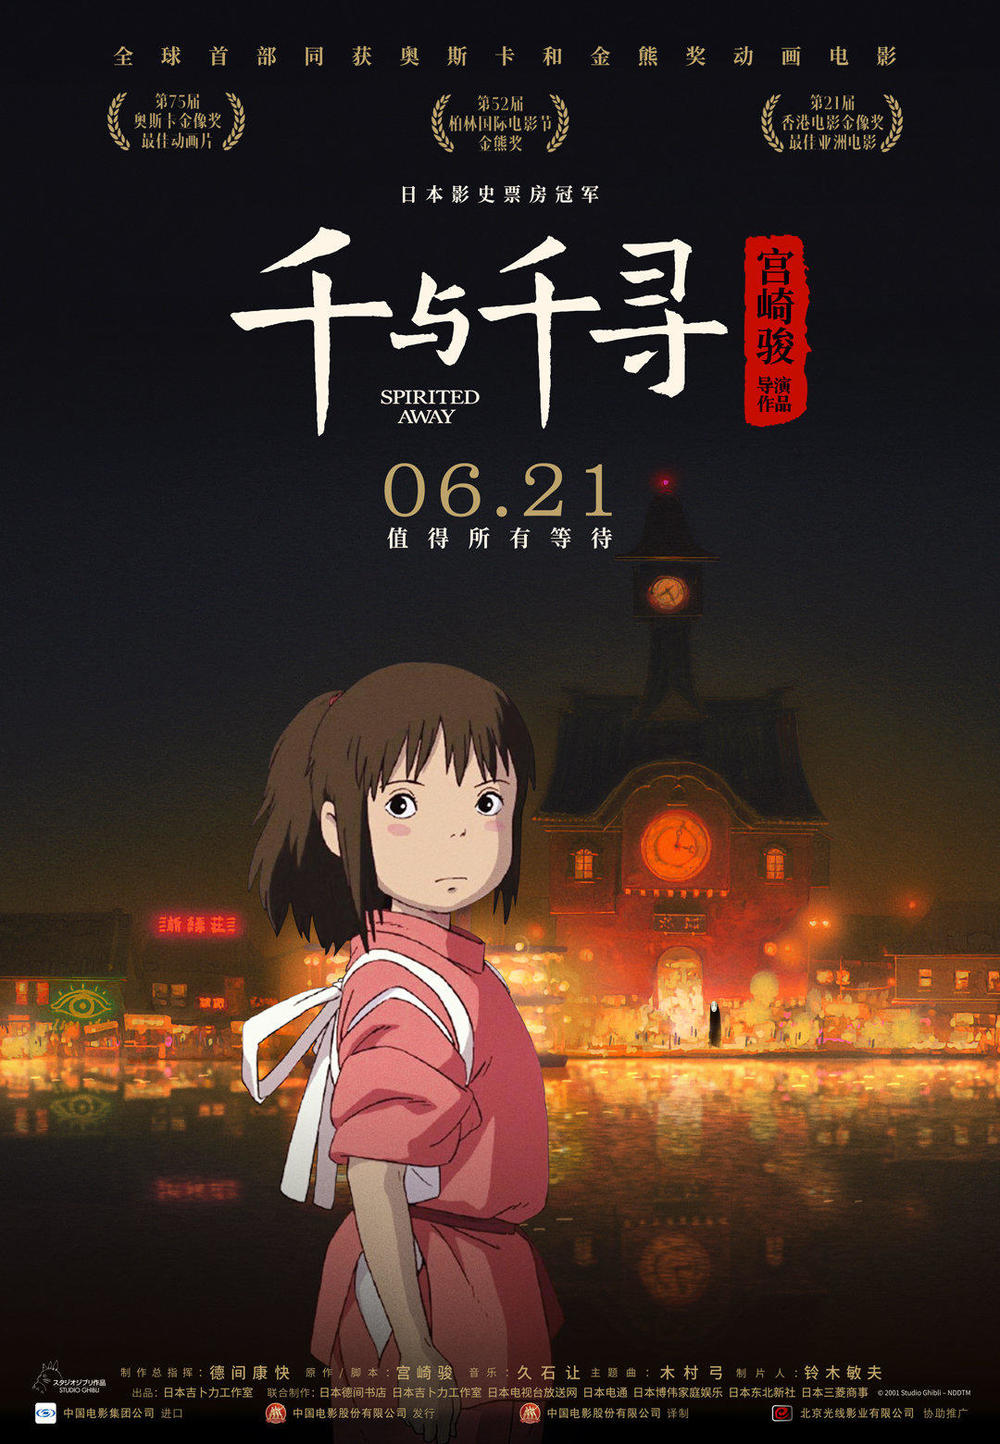 Spirited Away Tops Chinese Mainland Box Office Chinadaily Com Cn